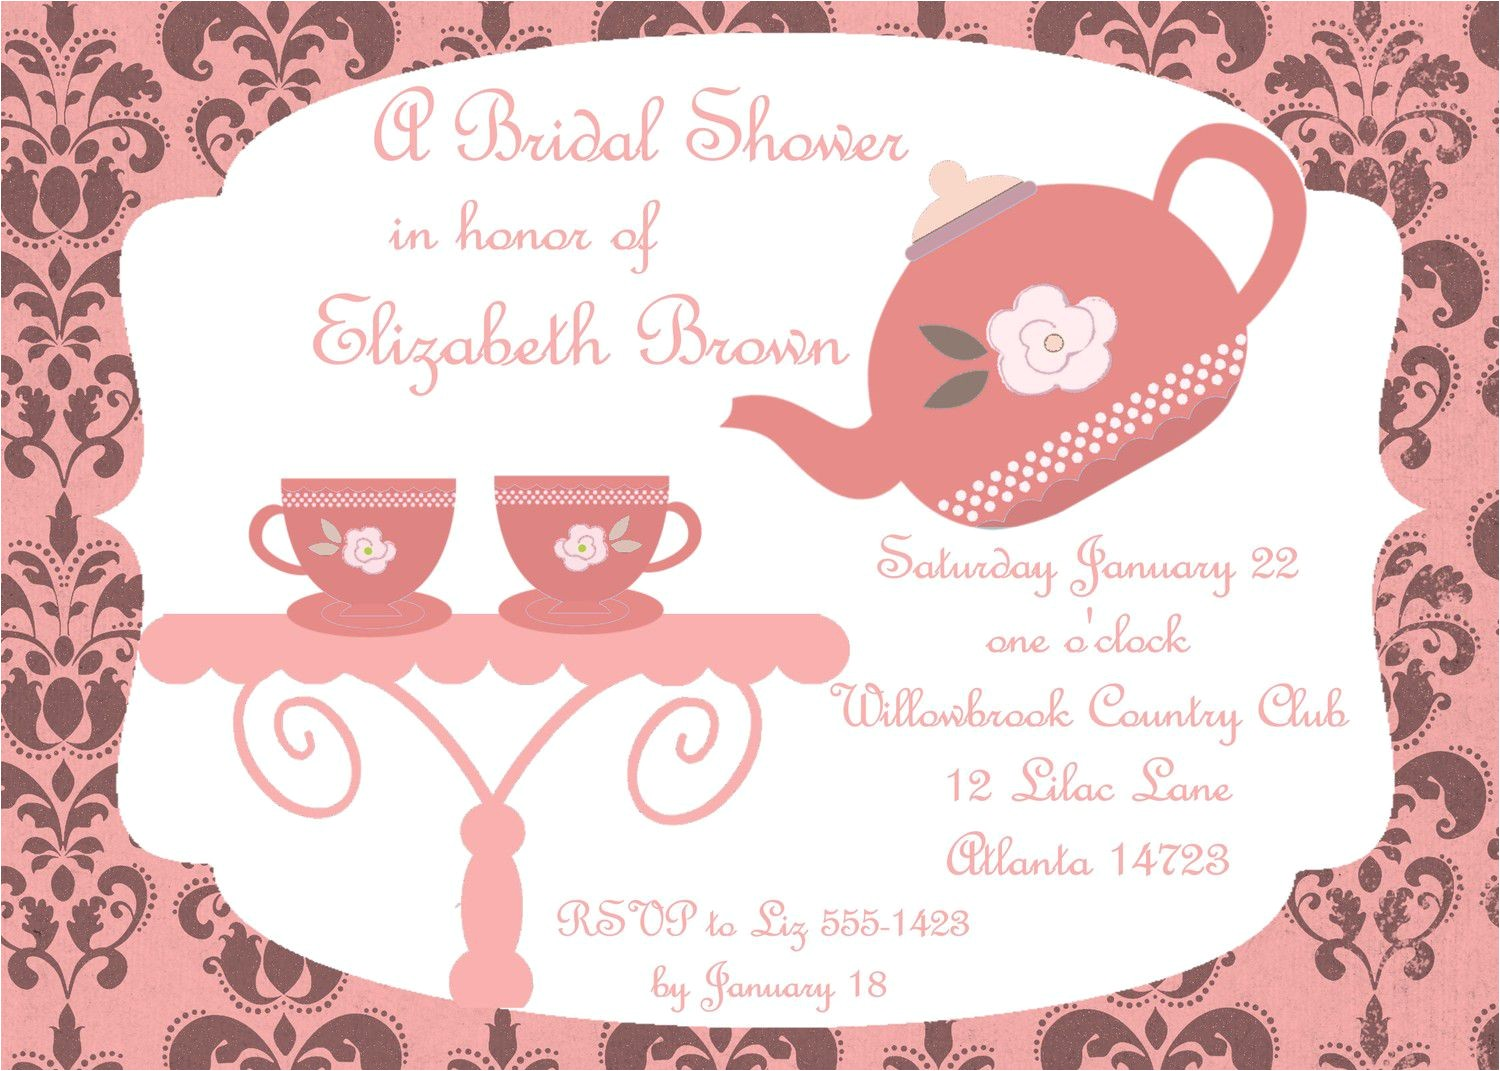 Bridal Tea Party Invitations Free Bridal Shower Tea Party Invitations Bridal Shower Tea